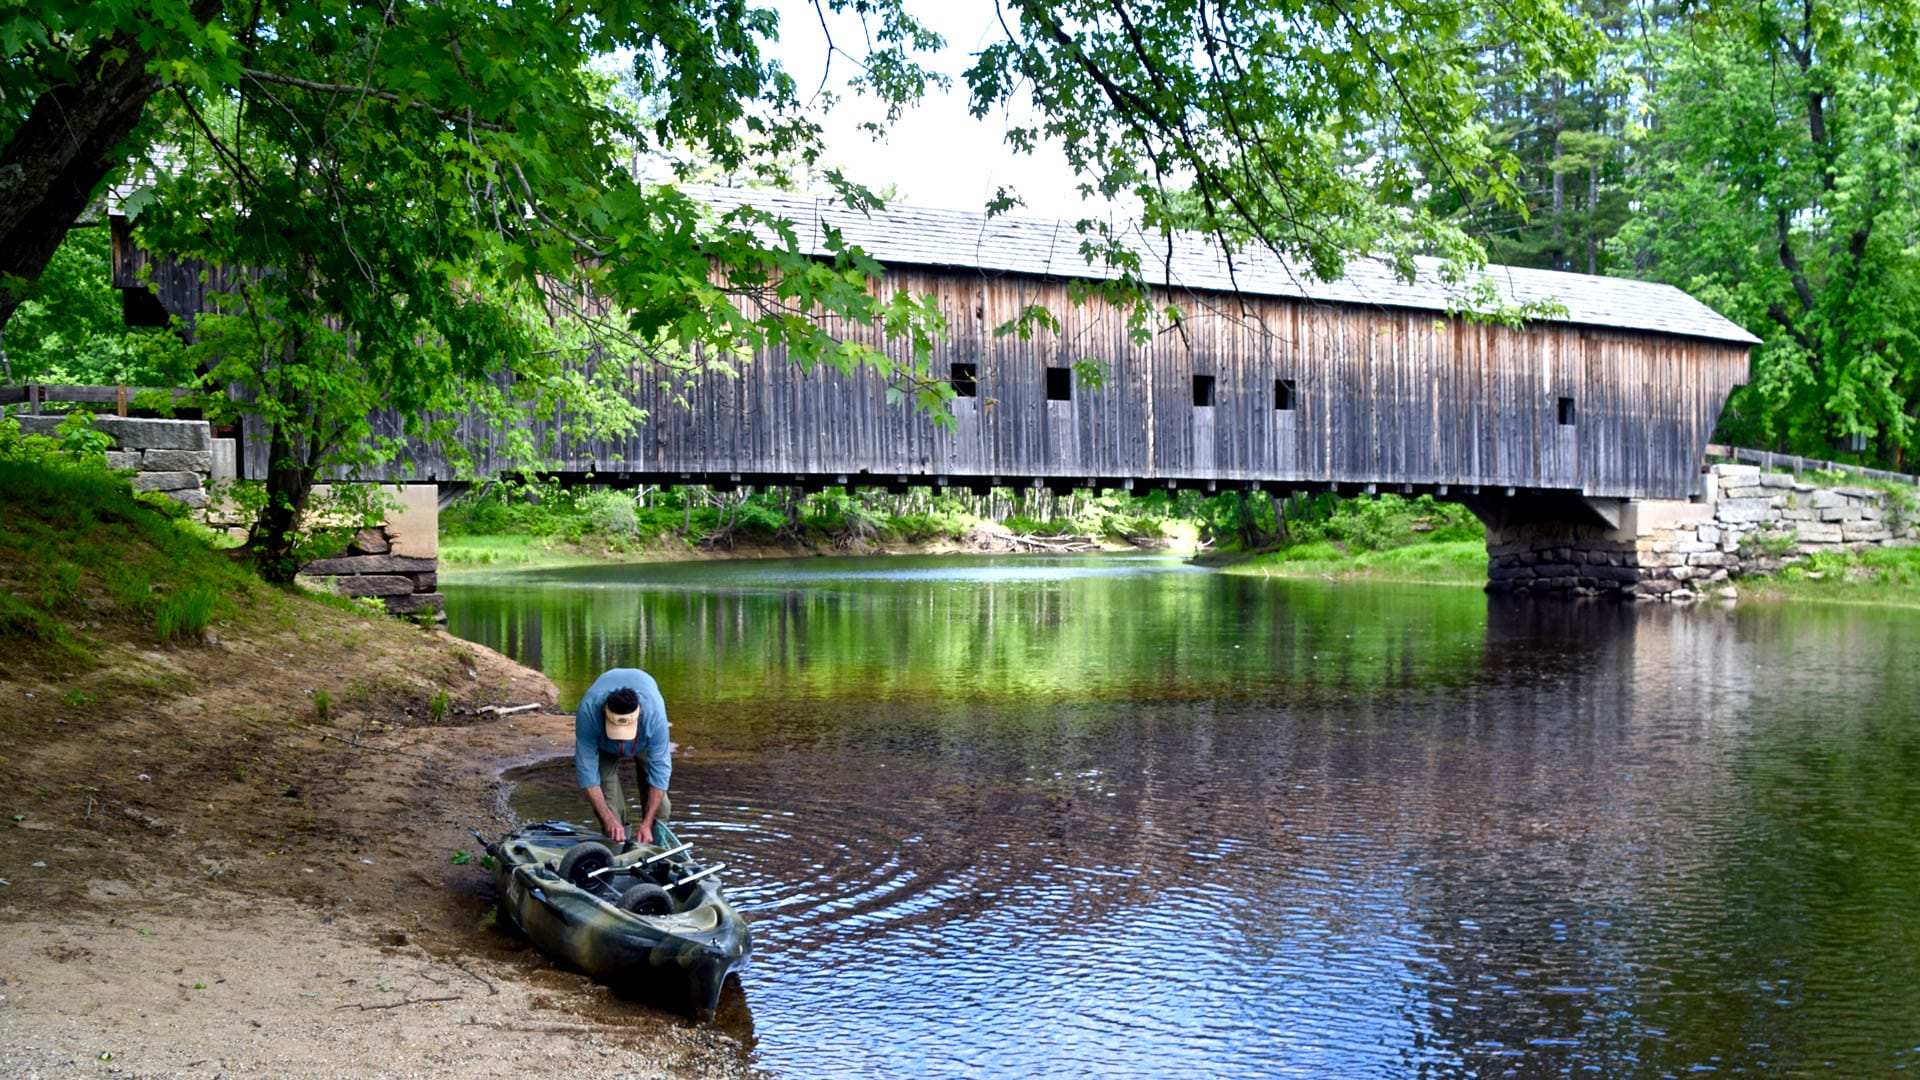 Road Trip on Maine's Pequawket Scenic Byway - Pursuits with